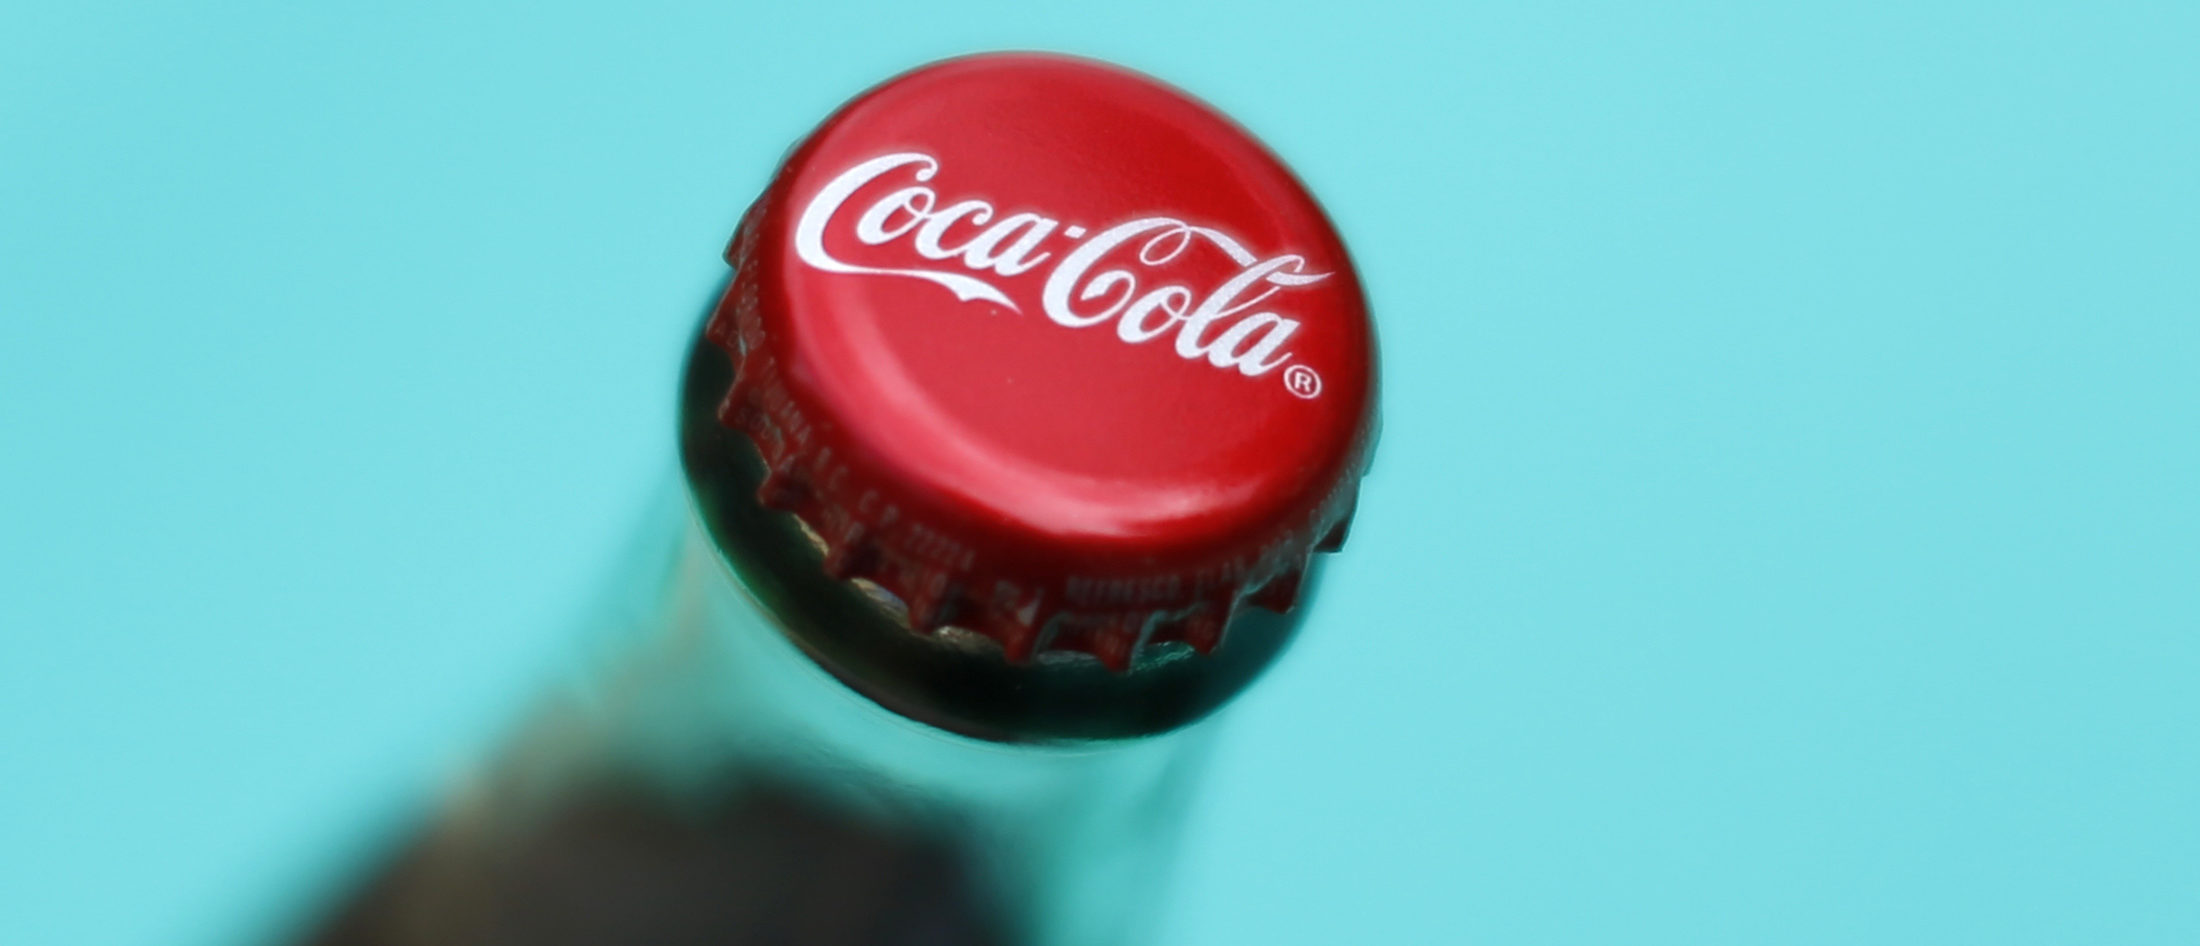 A bottle of Coca-Cola is shown in this photo illustration in Encinitas, California October 10, 2013. The Coca-Cola Company will report 3rd quarter earnings October 15. REUTERS/Mike Blake